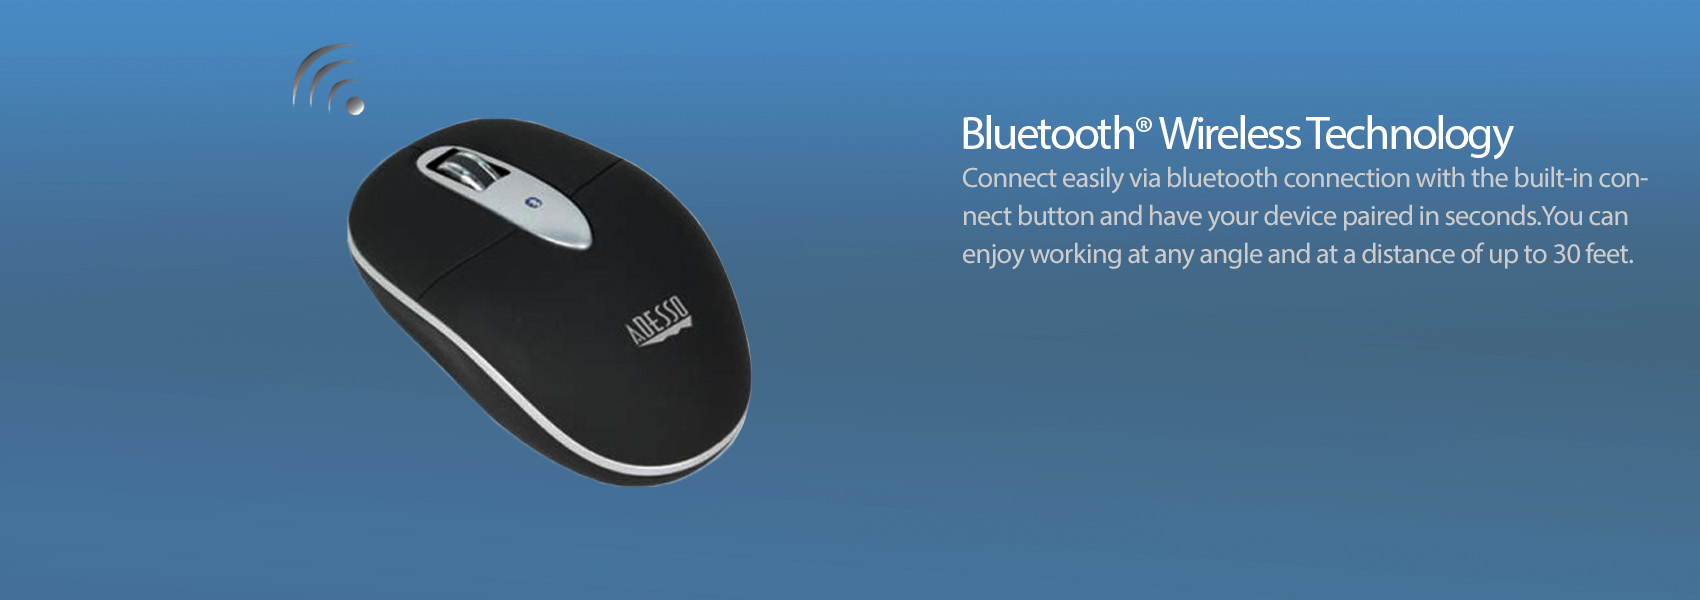 Imouse S100 Bluetooth Mini Optical Scroll Mouse Adesso Inc Wireless Advence W10 Techology This Mouth Fits Perfectly With Your Windows 8 7 Vista Xp And Mac Os X Systems It Allows Users To Work Freely